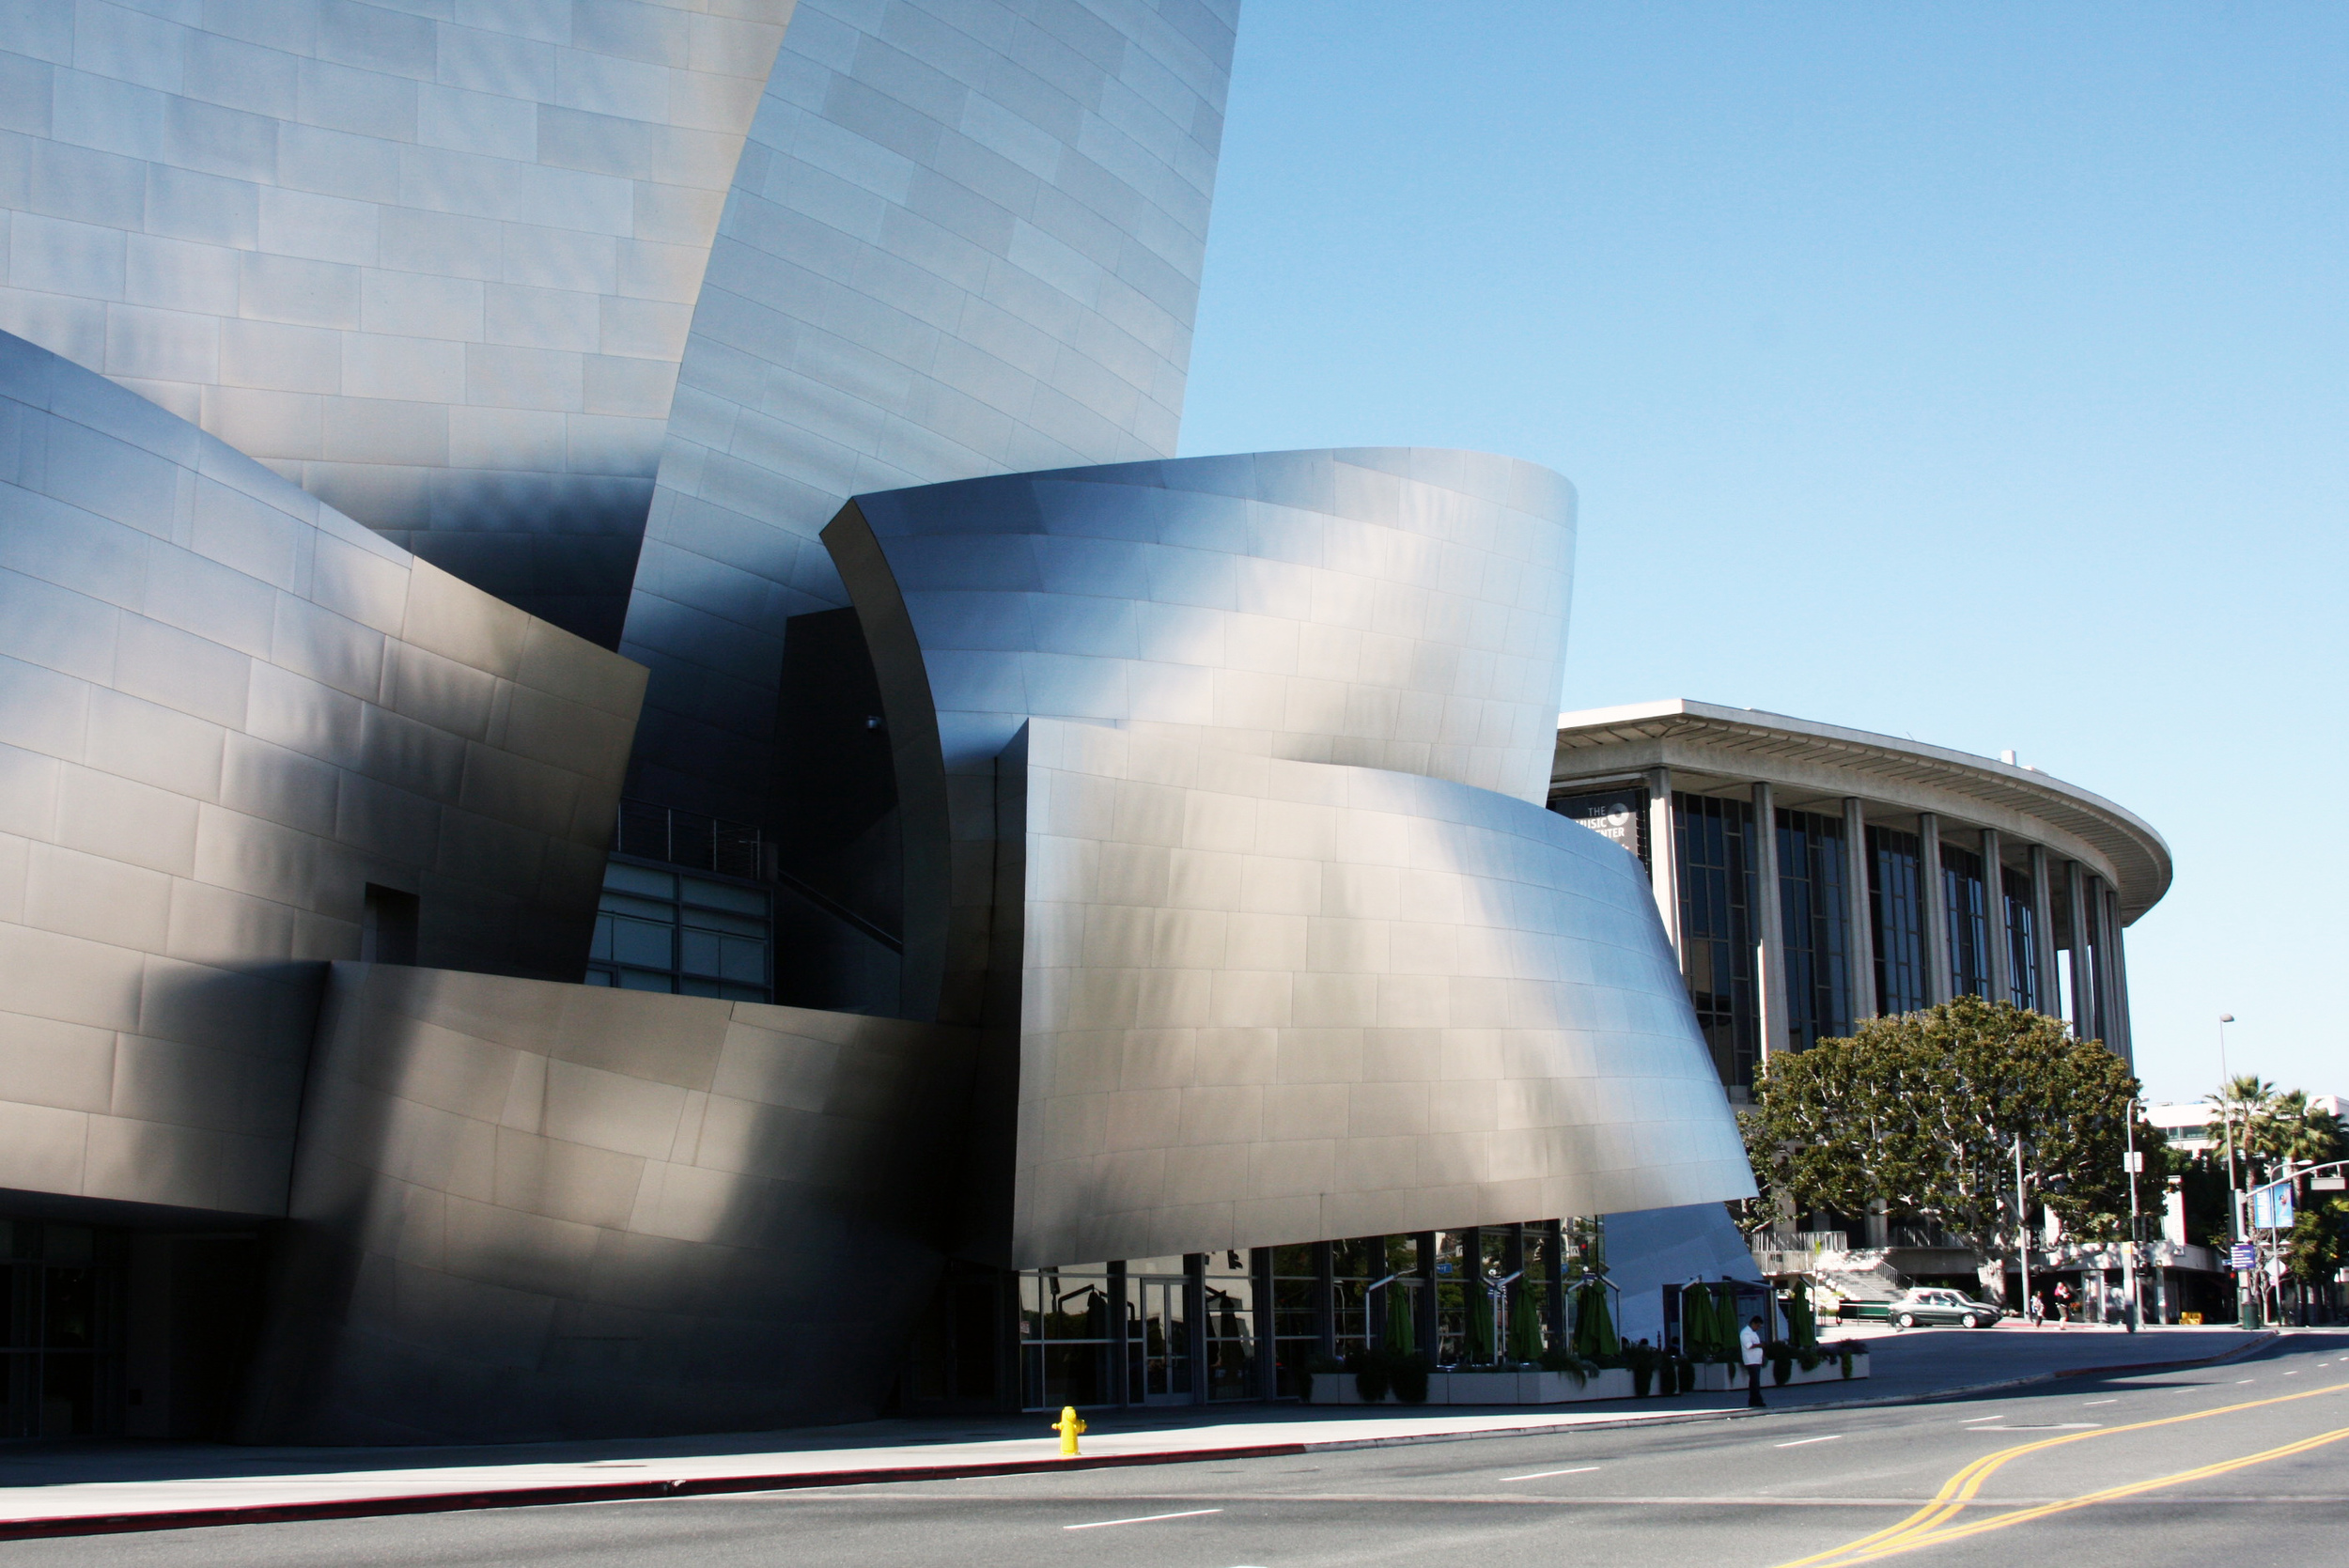 Walt Disney Music Hall with the Dorothy Chandler Pavilion in the background